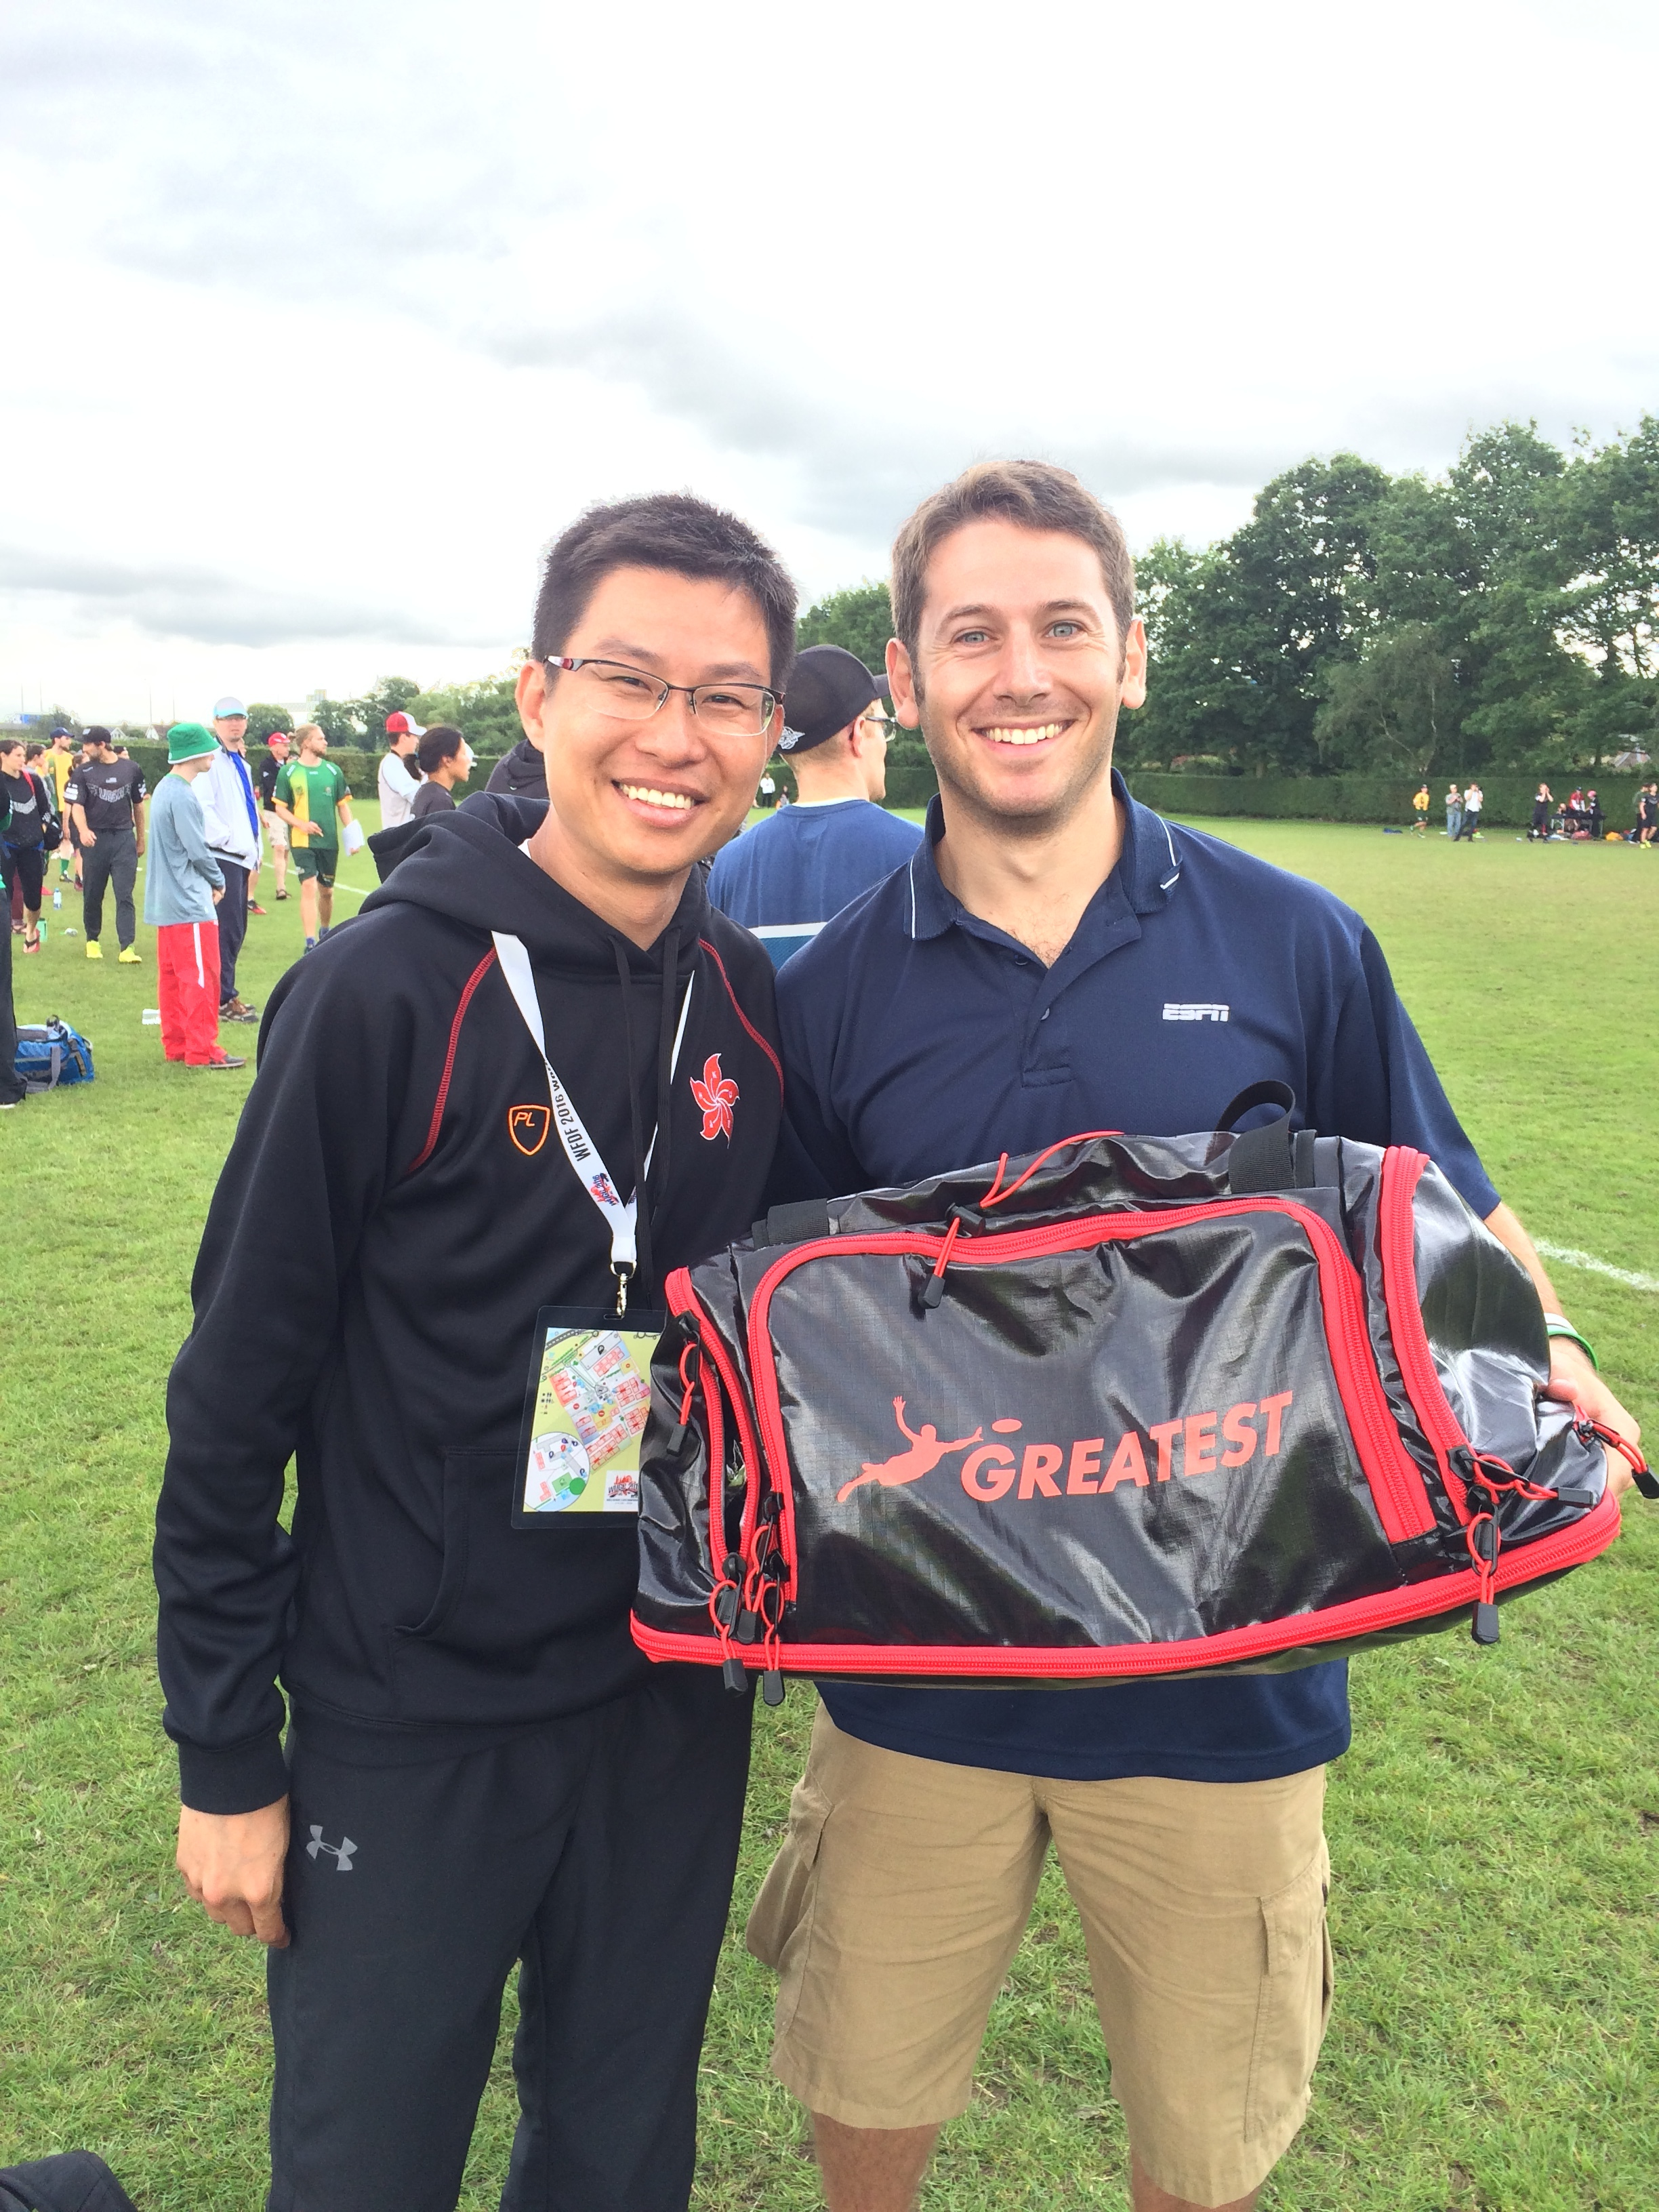 Evan (right) and Terry Au at World Ultimate and Guts Championship in London, June 2016